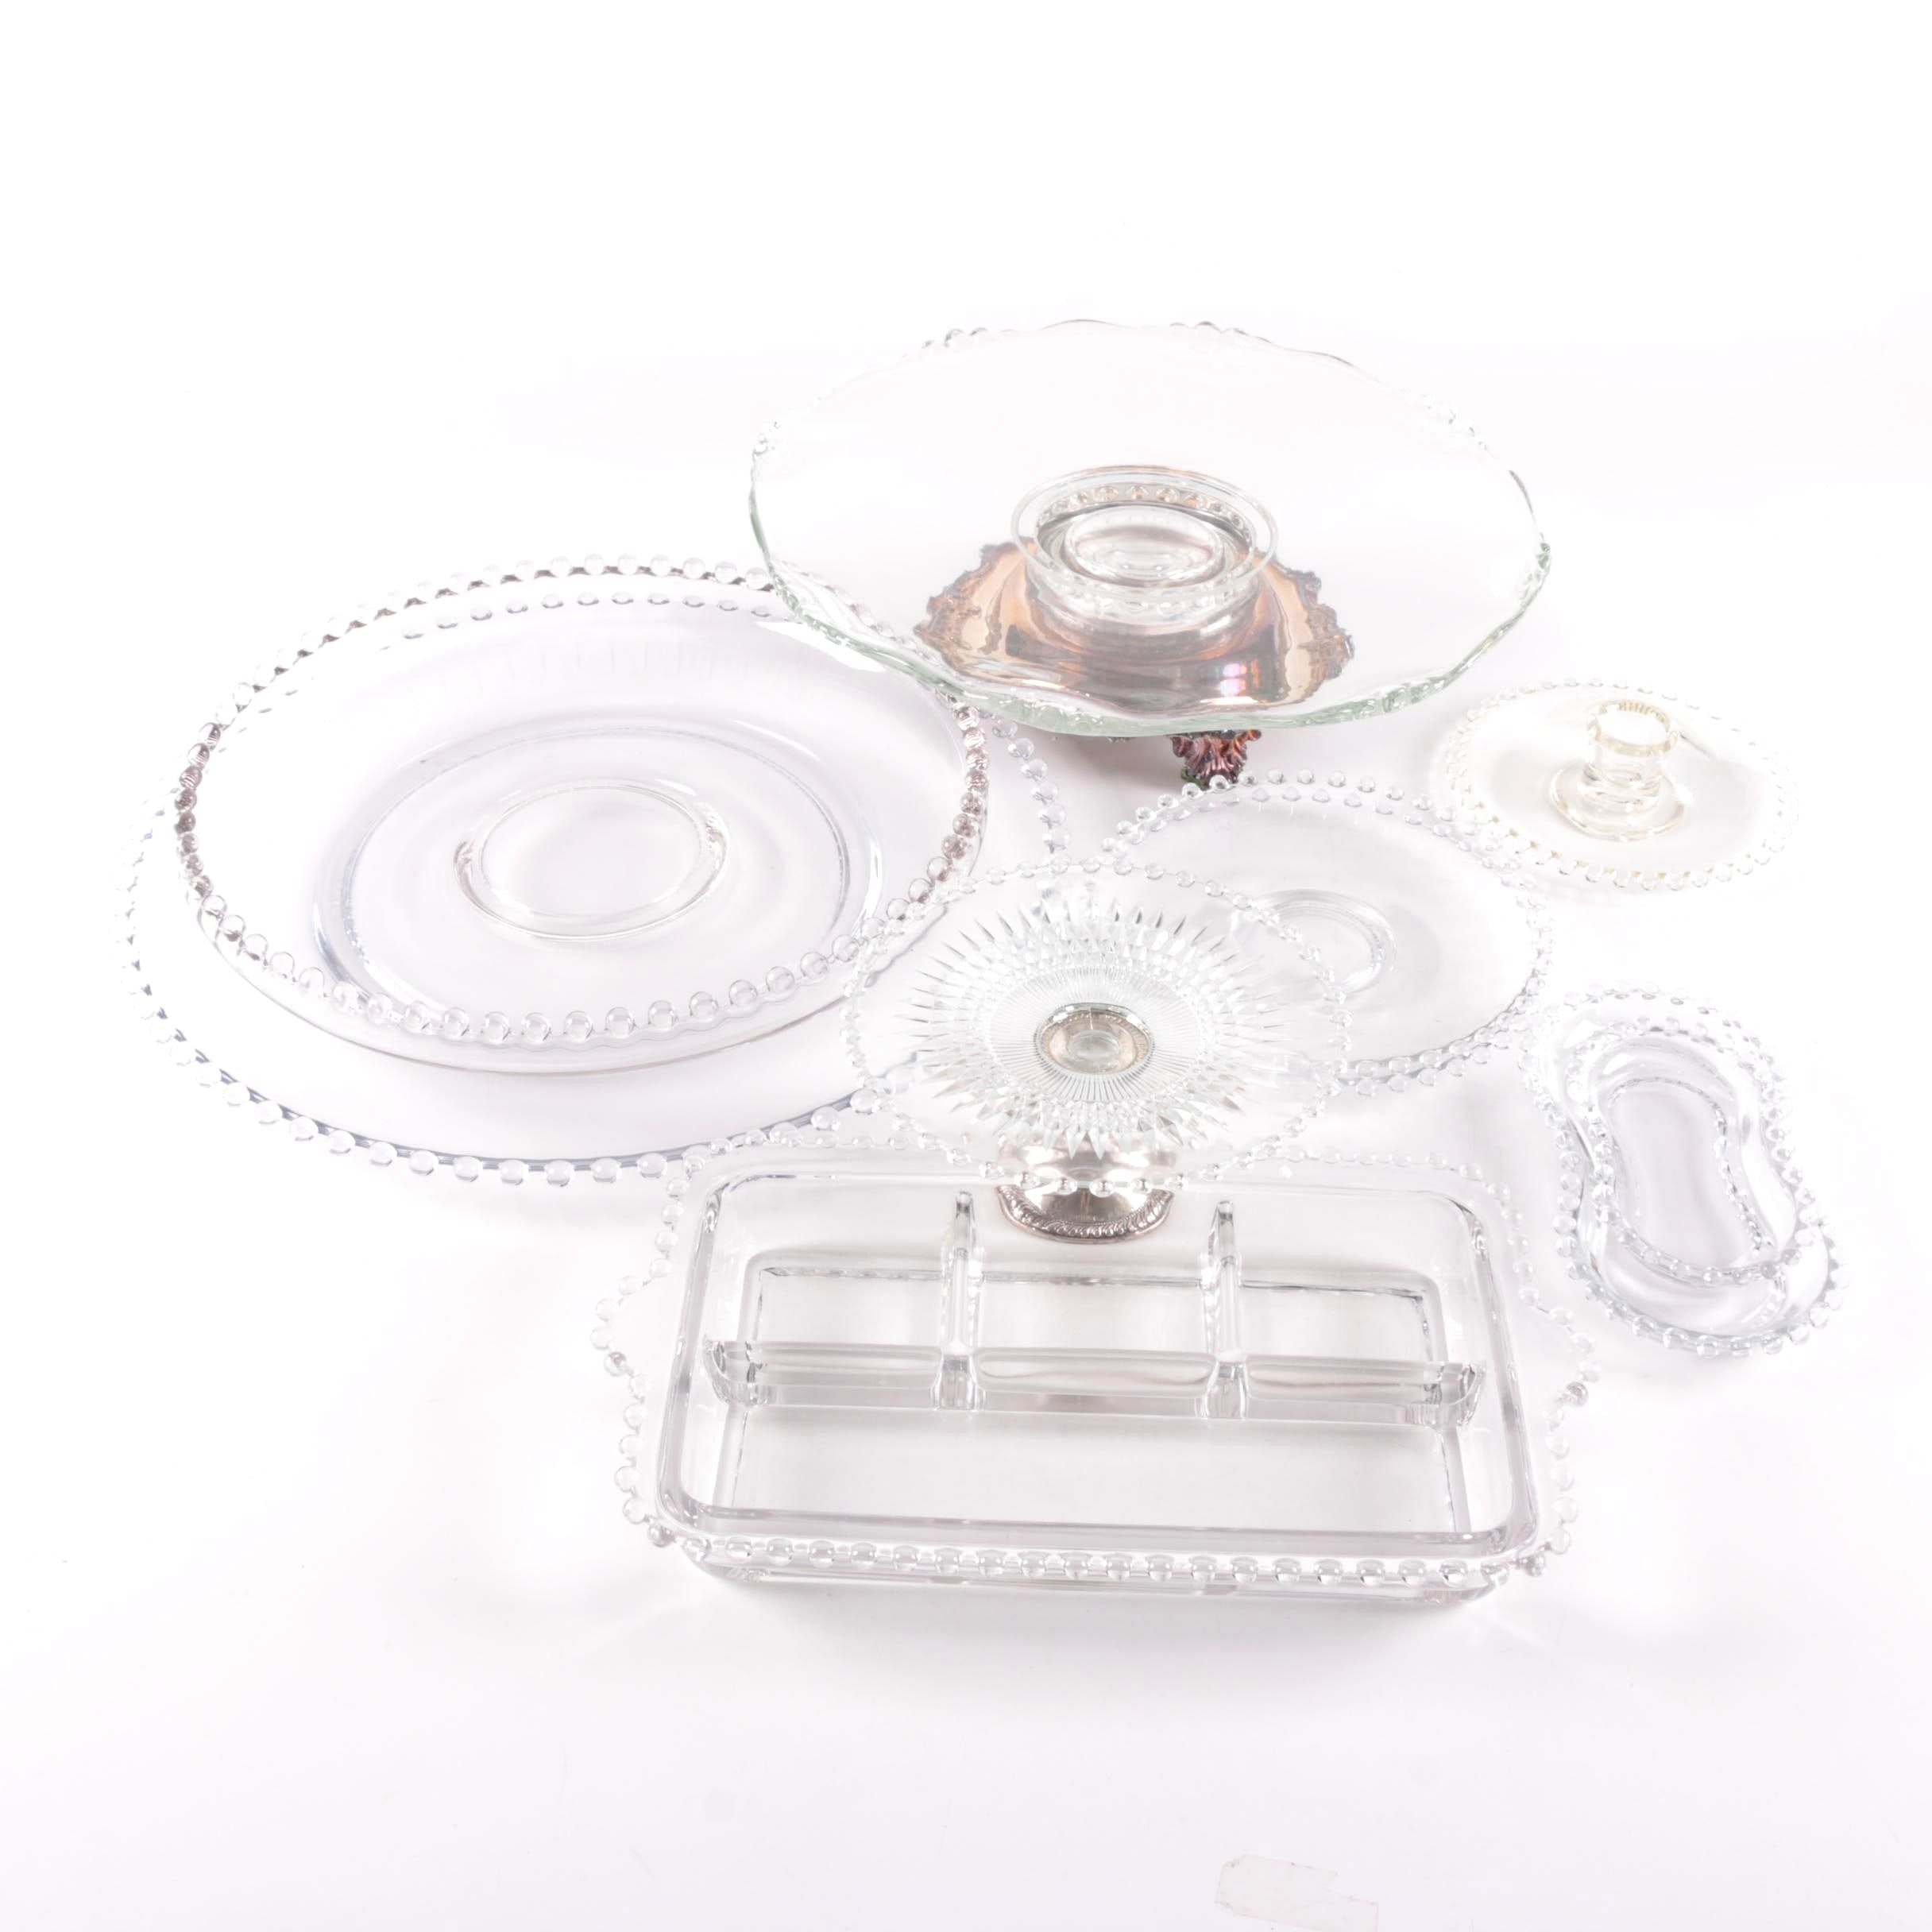 Crystal and Glass Tableware Featuring Sterling Silver Accents